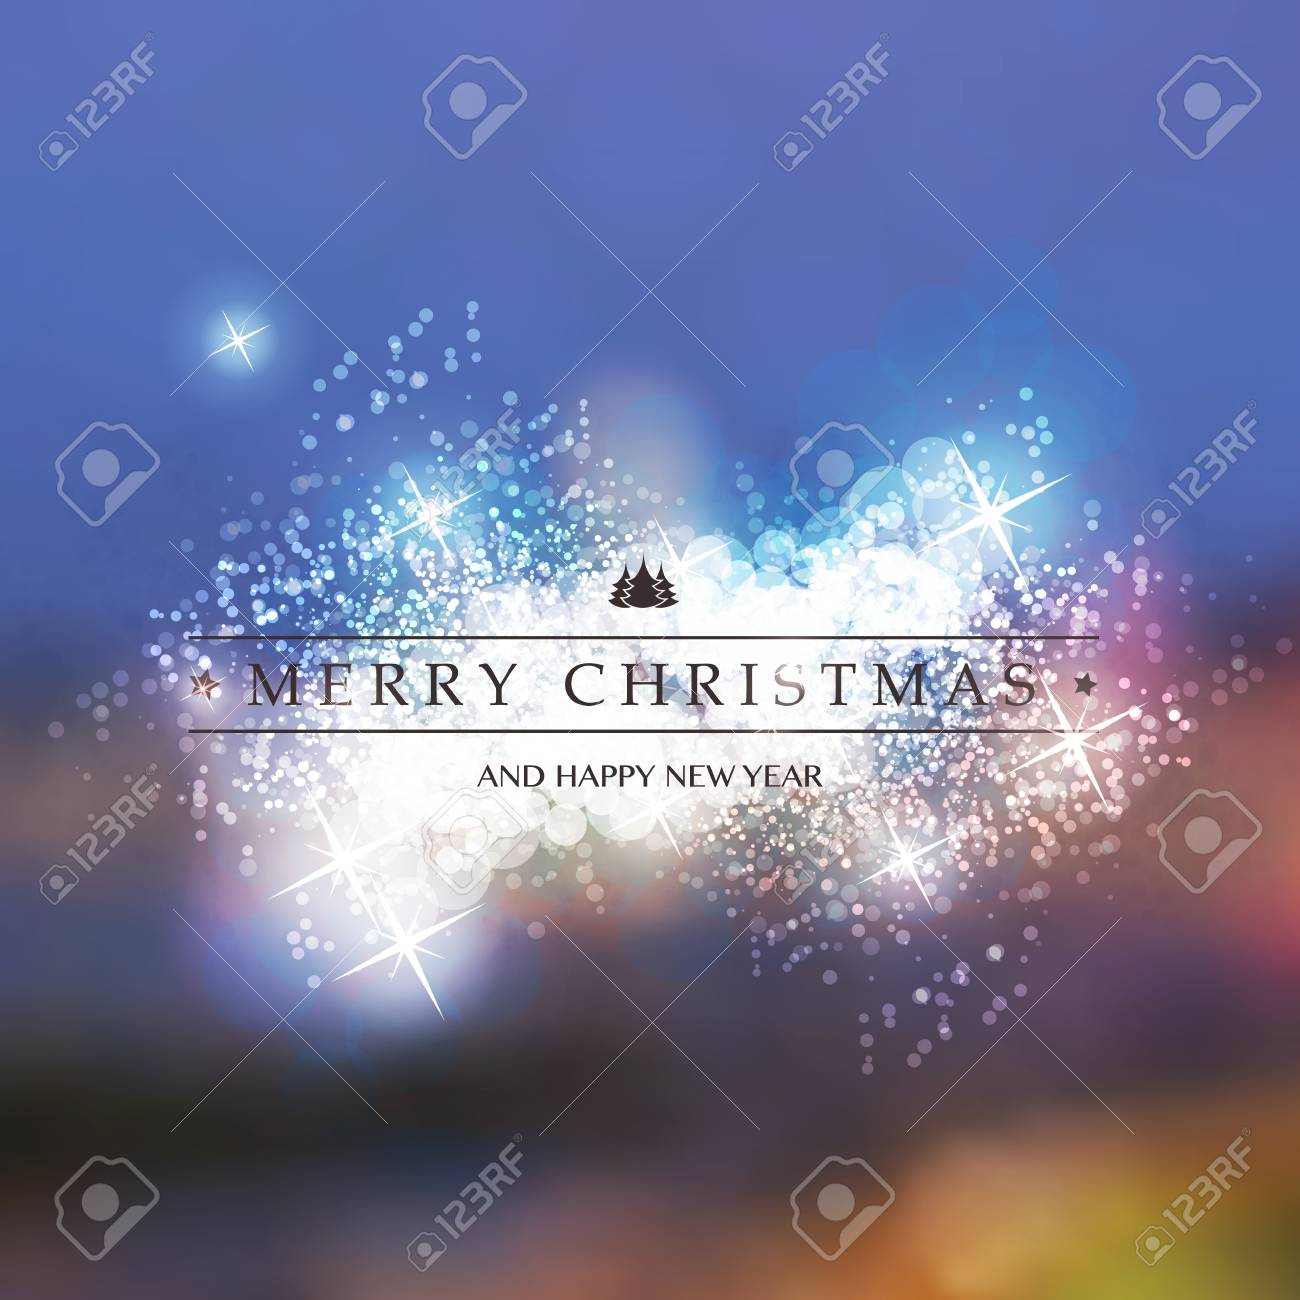 Colorful Happy Holidays Merry Christmas And New Year Greeting